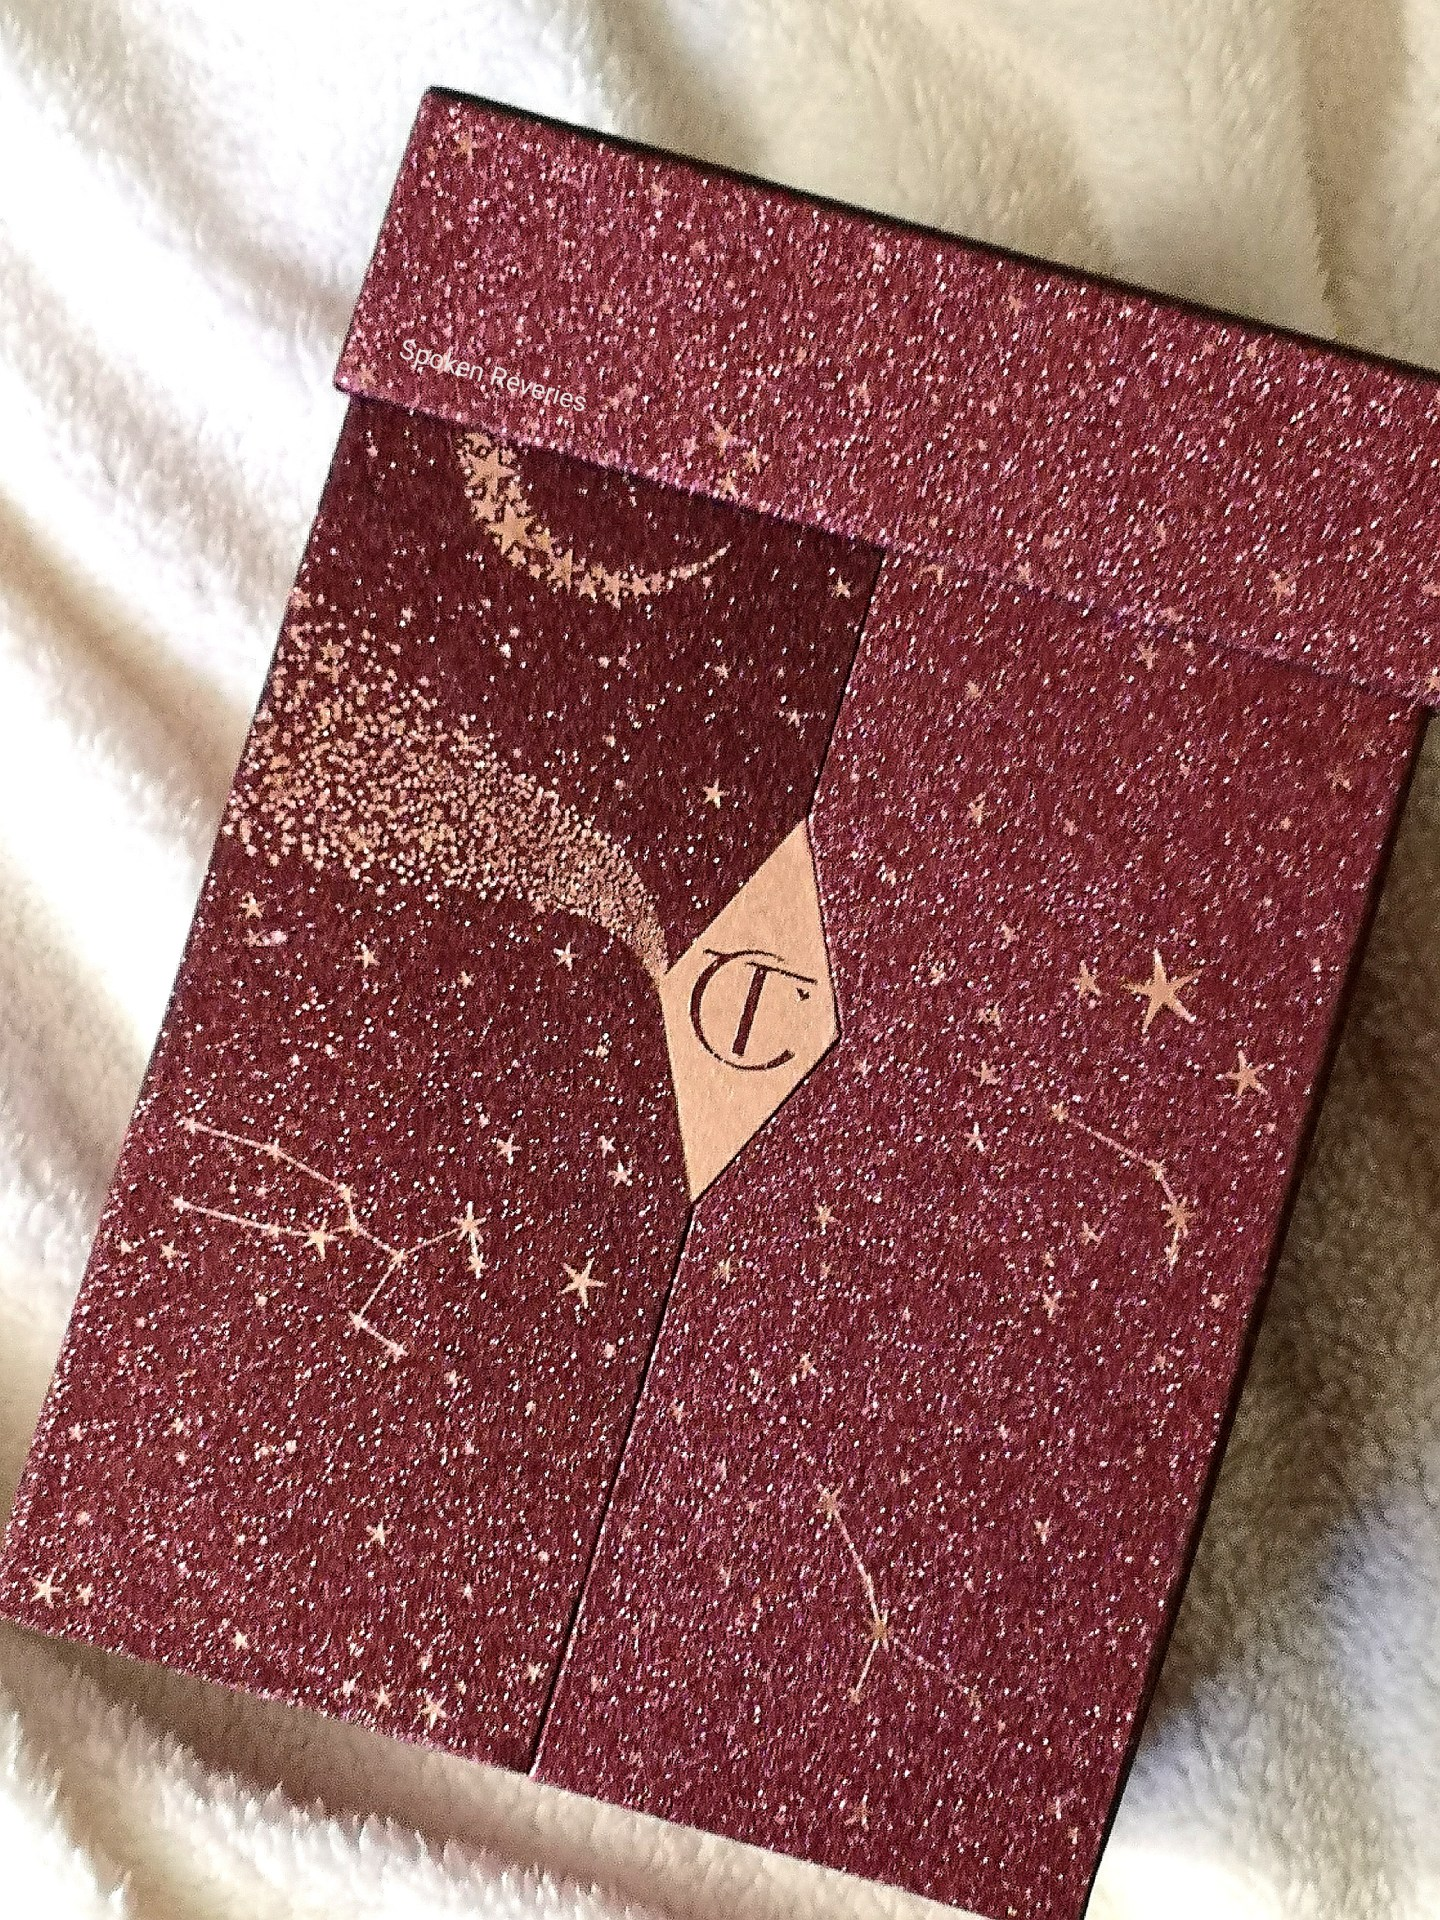 Luxury Beauty Advent Calendar | Charlotte Tilbury Beauty Universe Advent Calendar